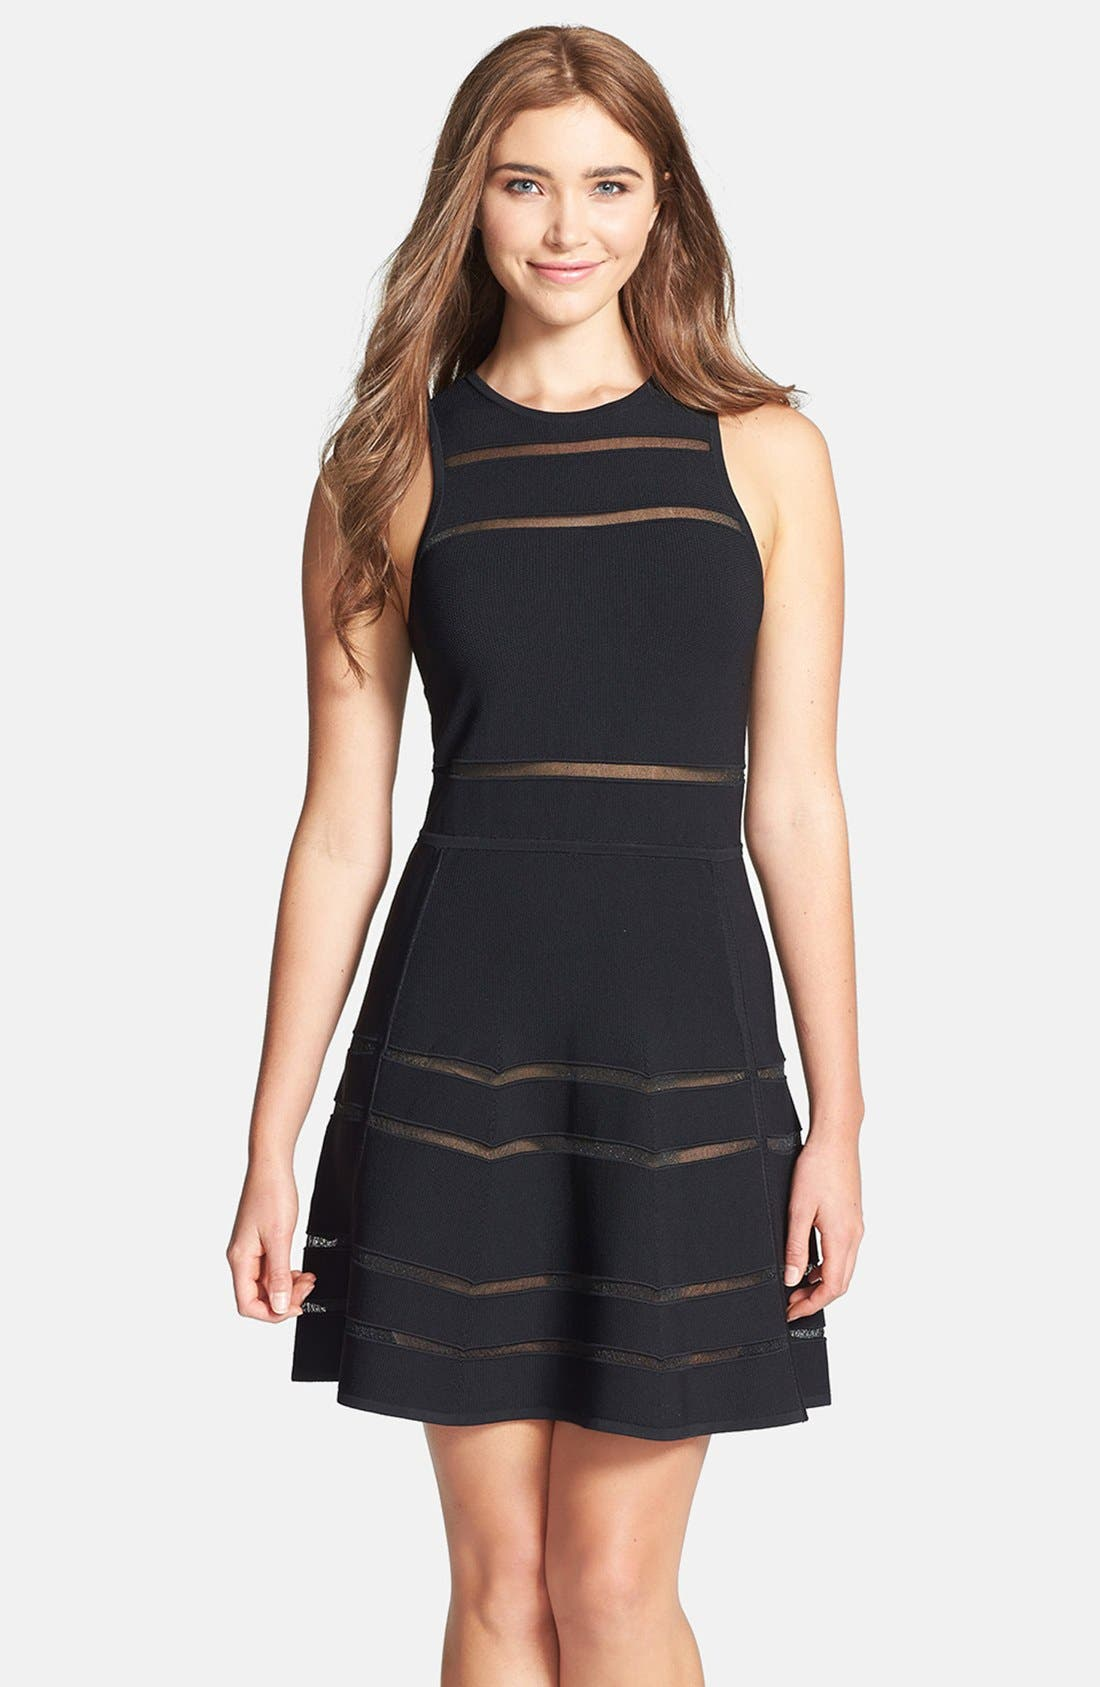 Alternate Image 1 Selected - Nicole Miller 'Cody' Banded Knit Fit & Flare Dress